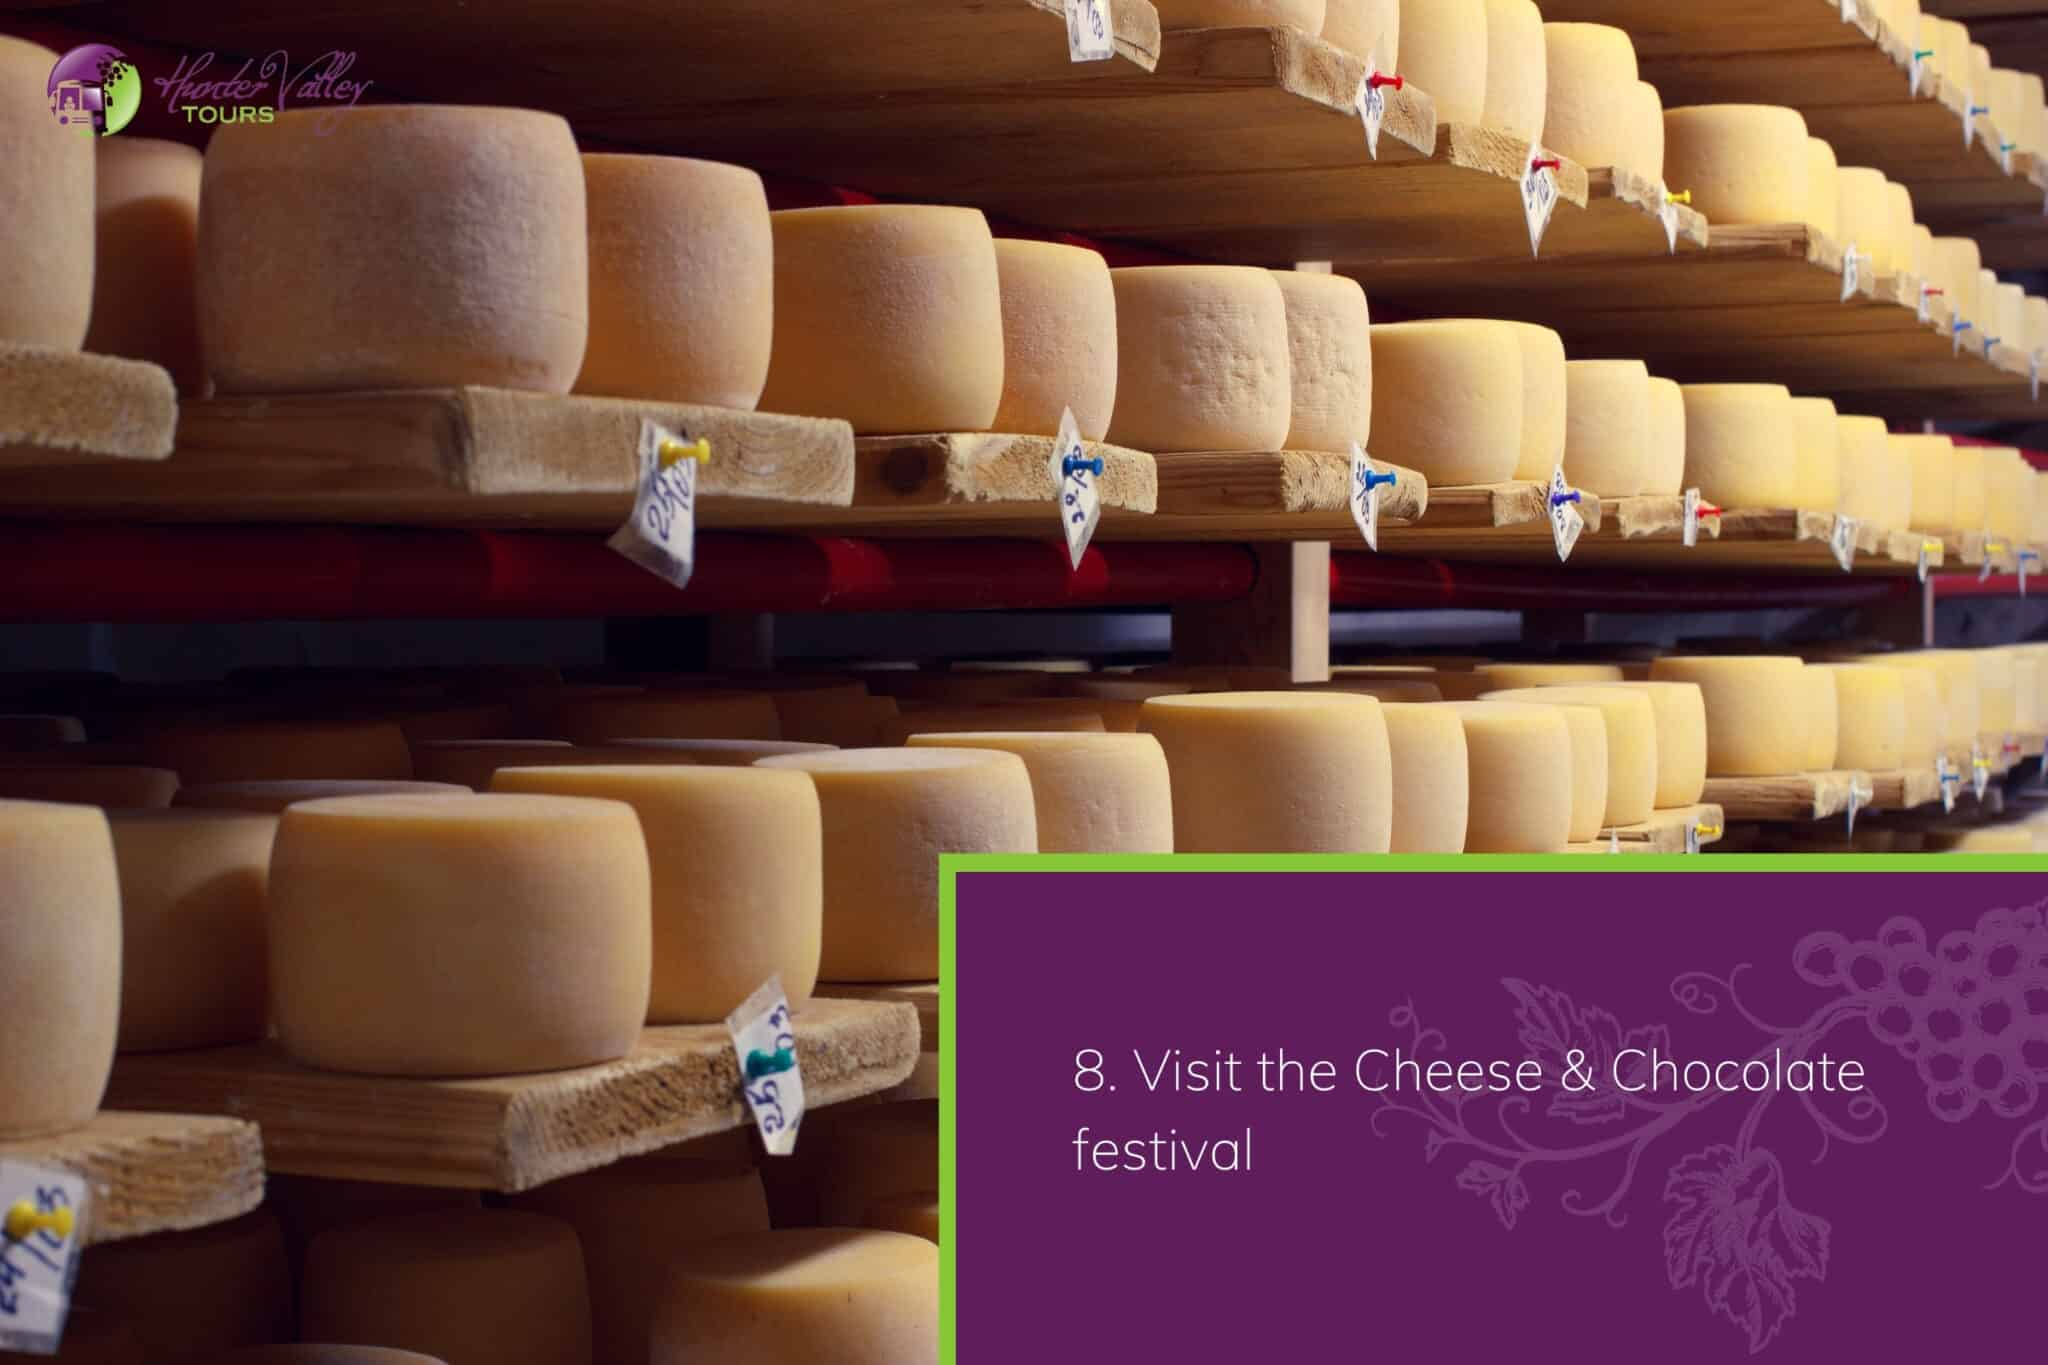 Visit the Cheese & Chocolate festival